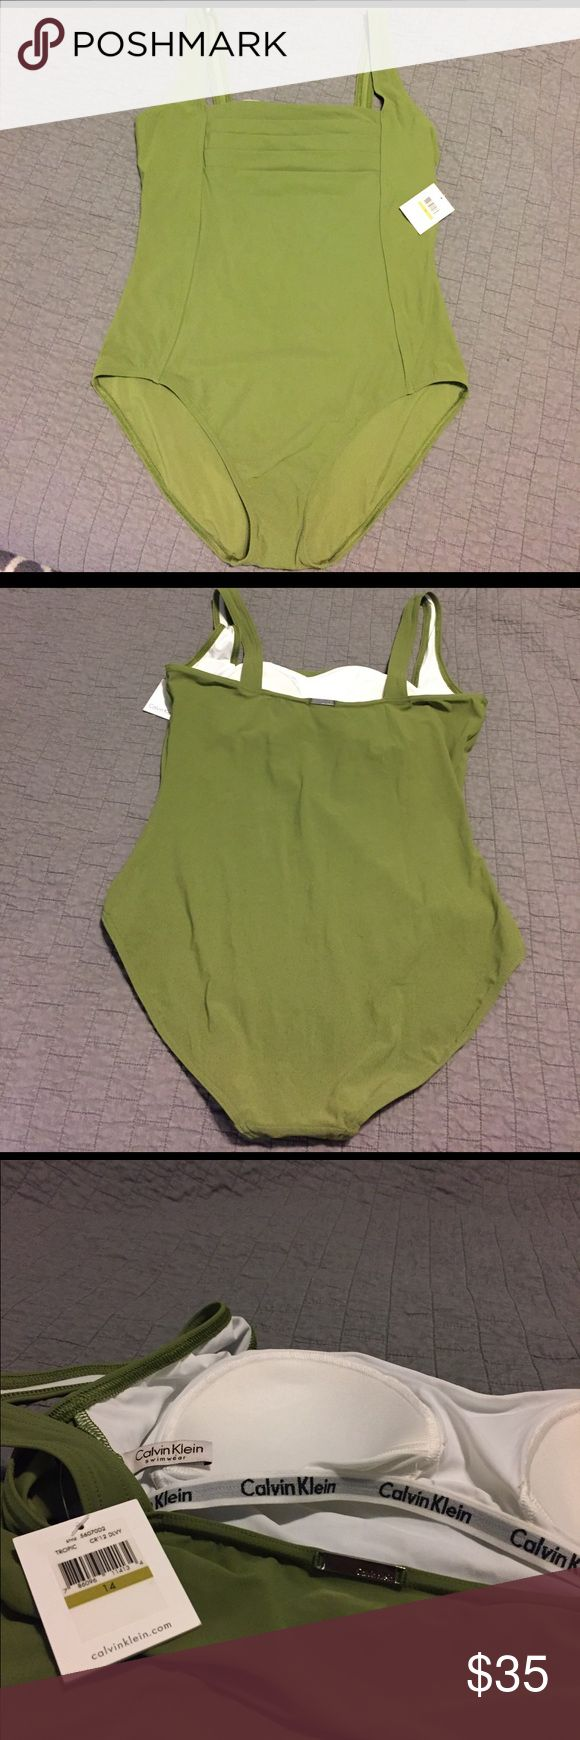 Calvin Klein one piece swim suit New with tags Calvin Klein one piece swim suit. Beautiful olive color. Calvin Klein Swim One Pieces